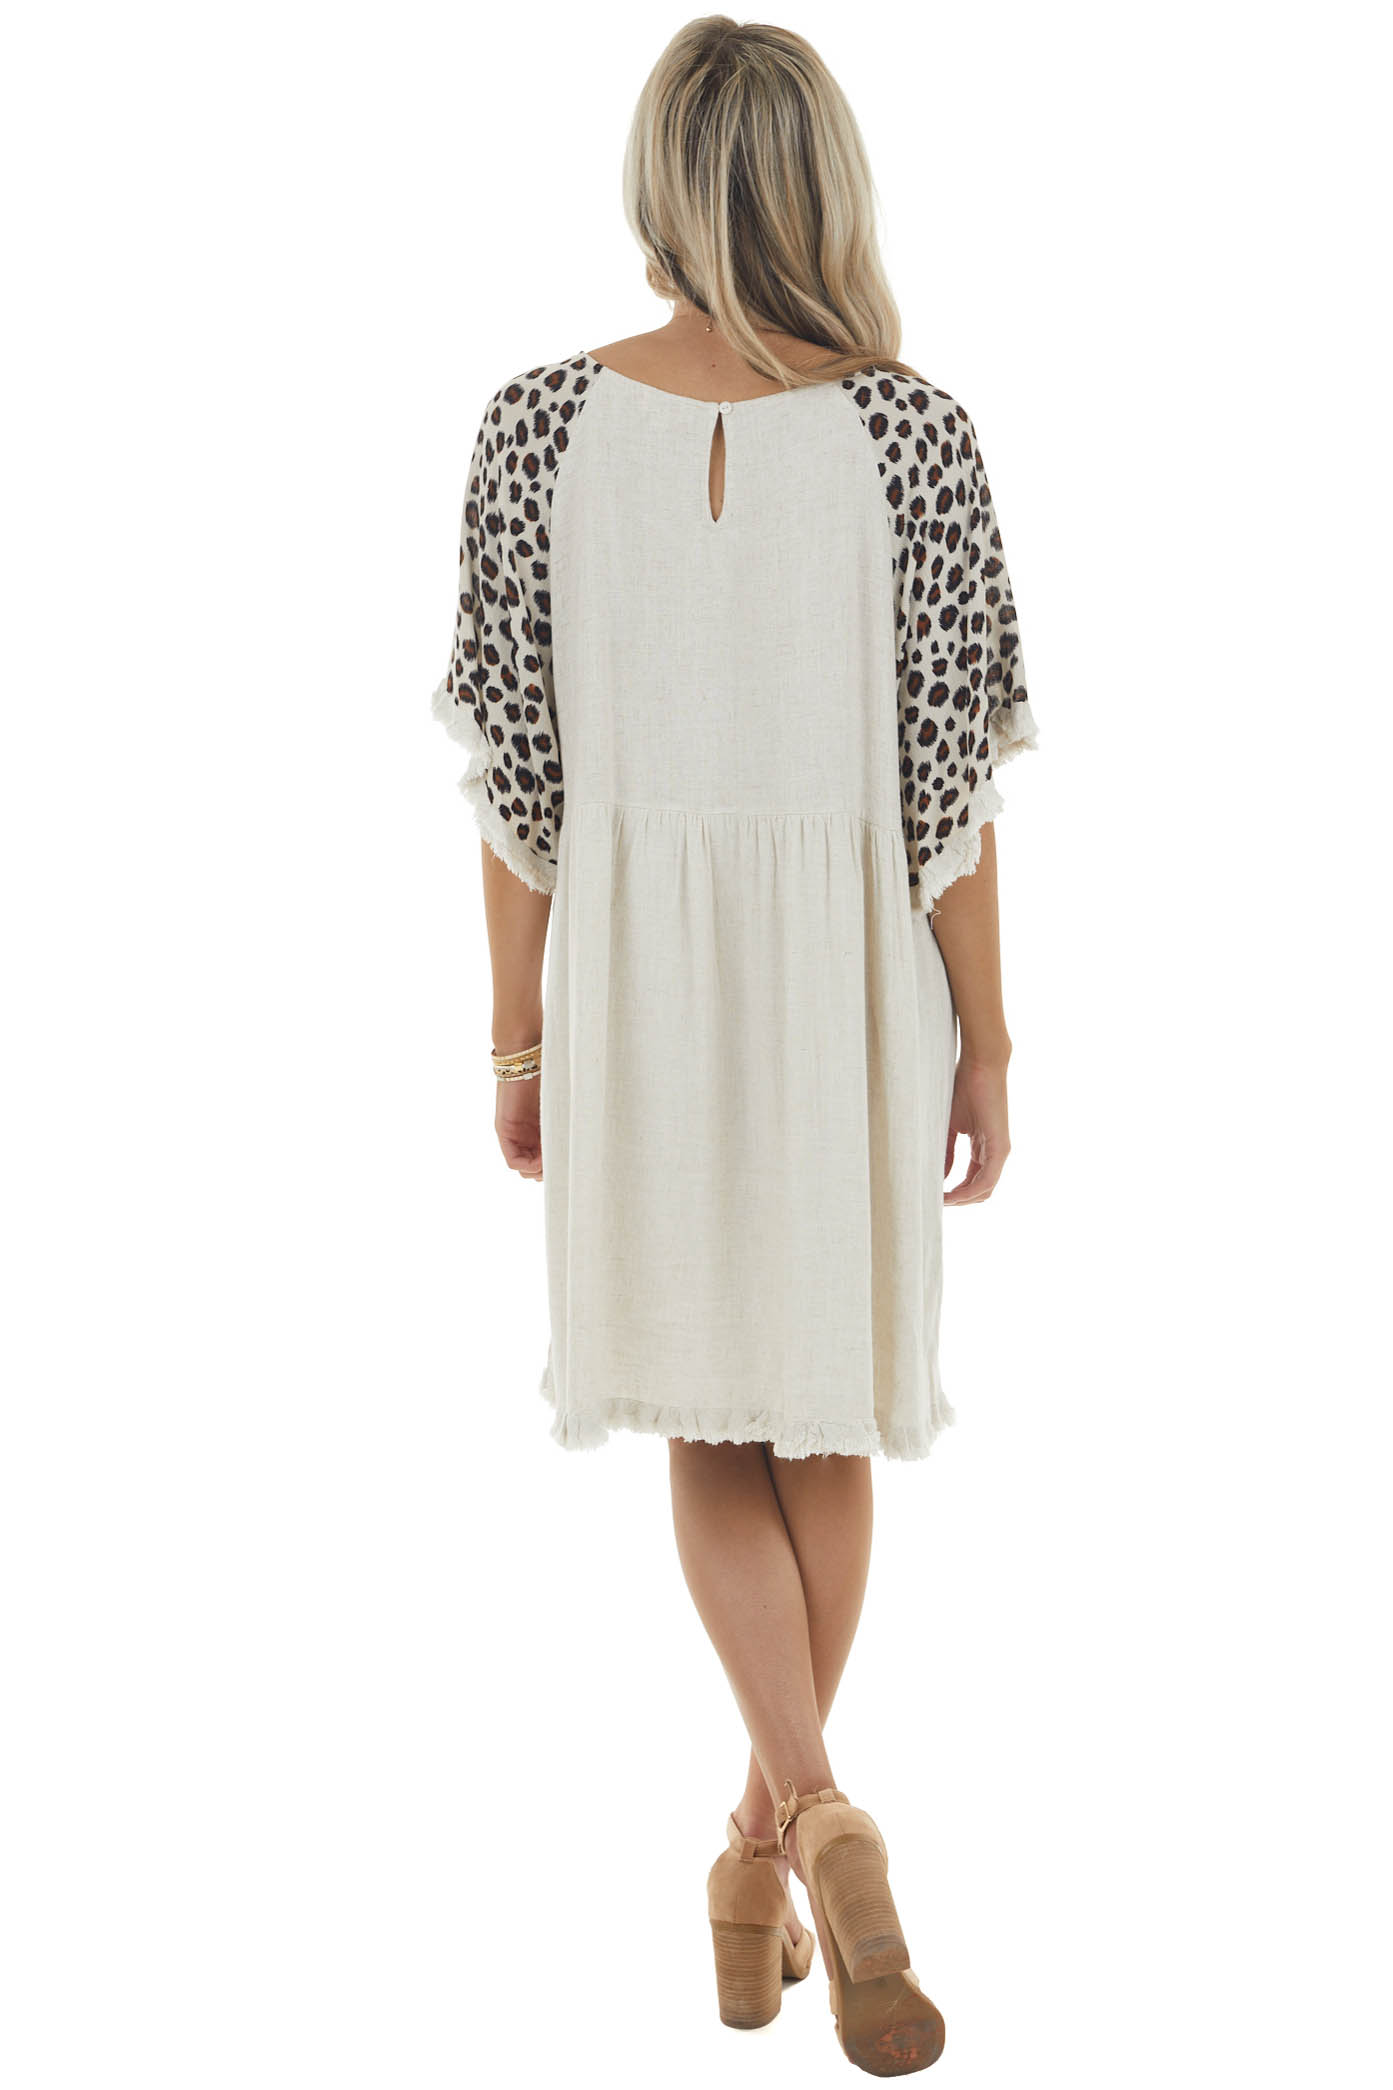 Oatmeal Leopard Print Babydoll Dress with Raw Detail